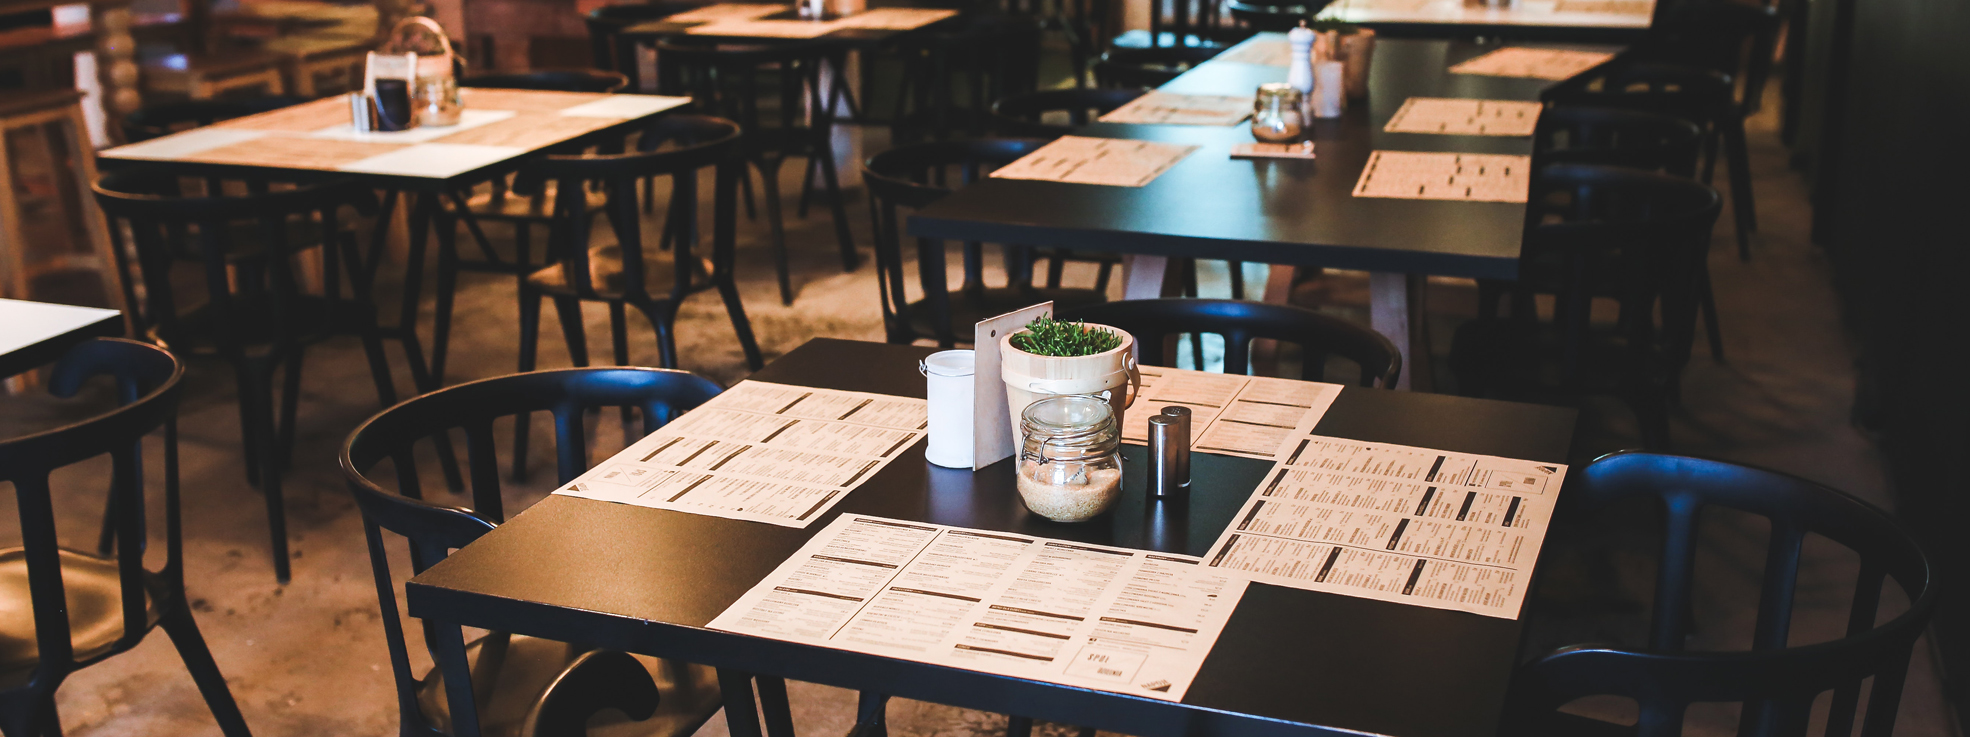 10 Signs You Are In A Good Restaurant